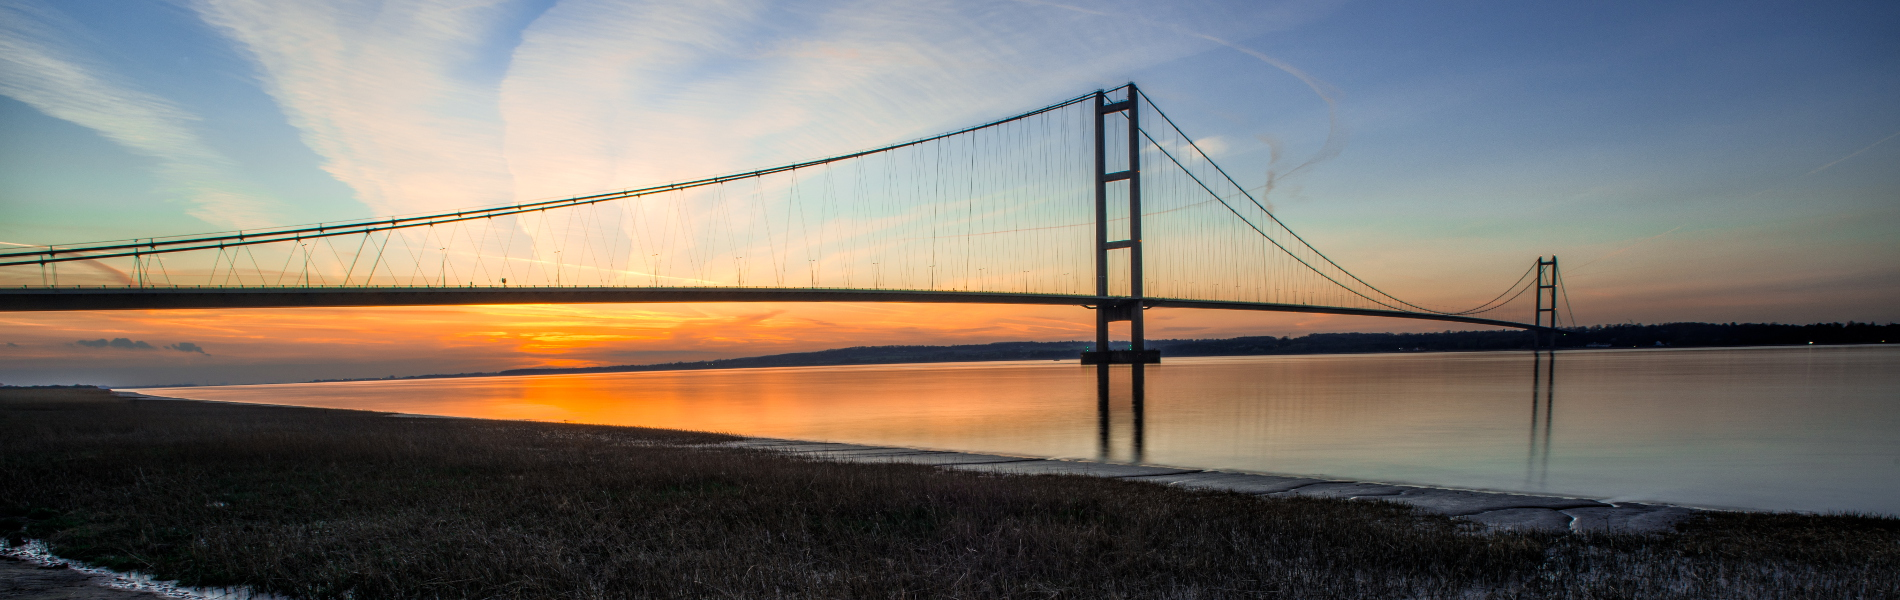 humber-bridge-sunset